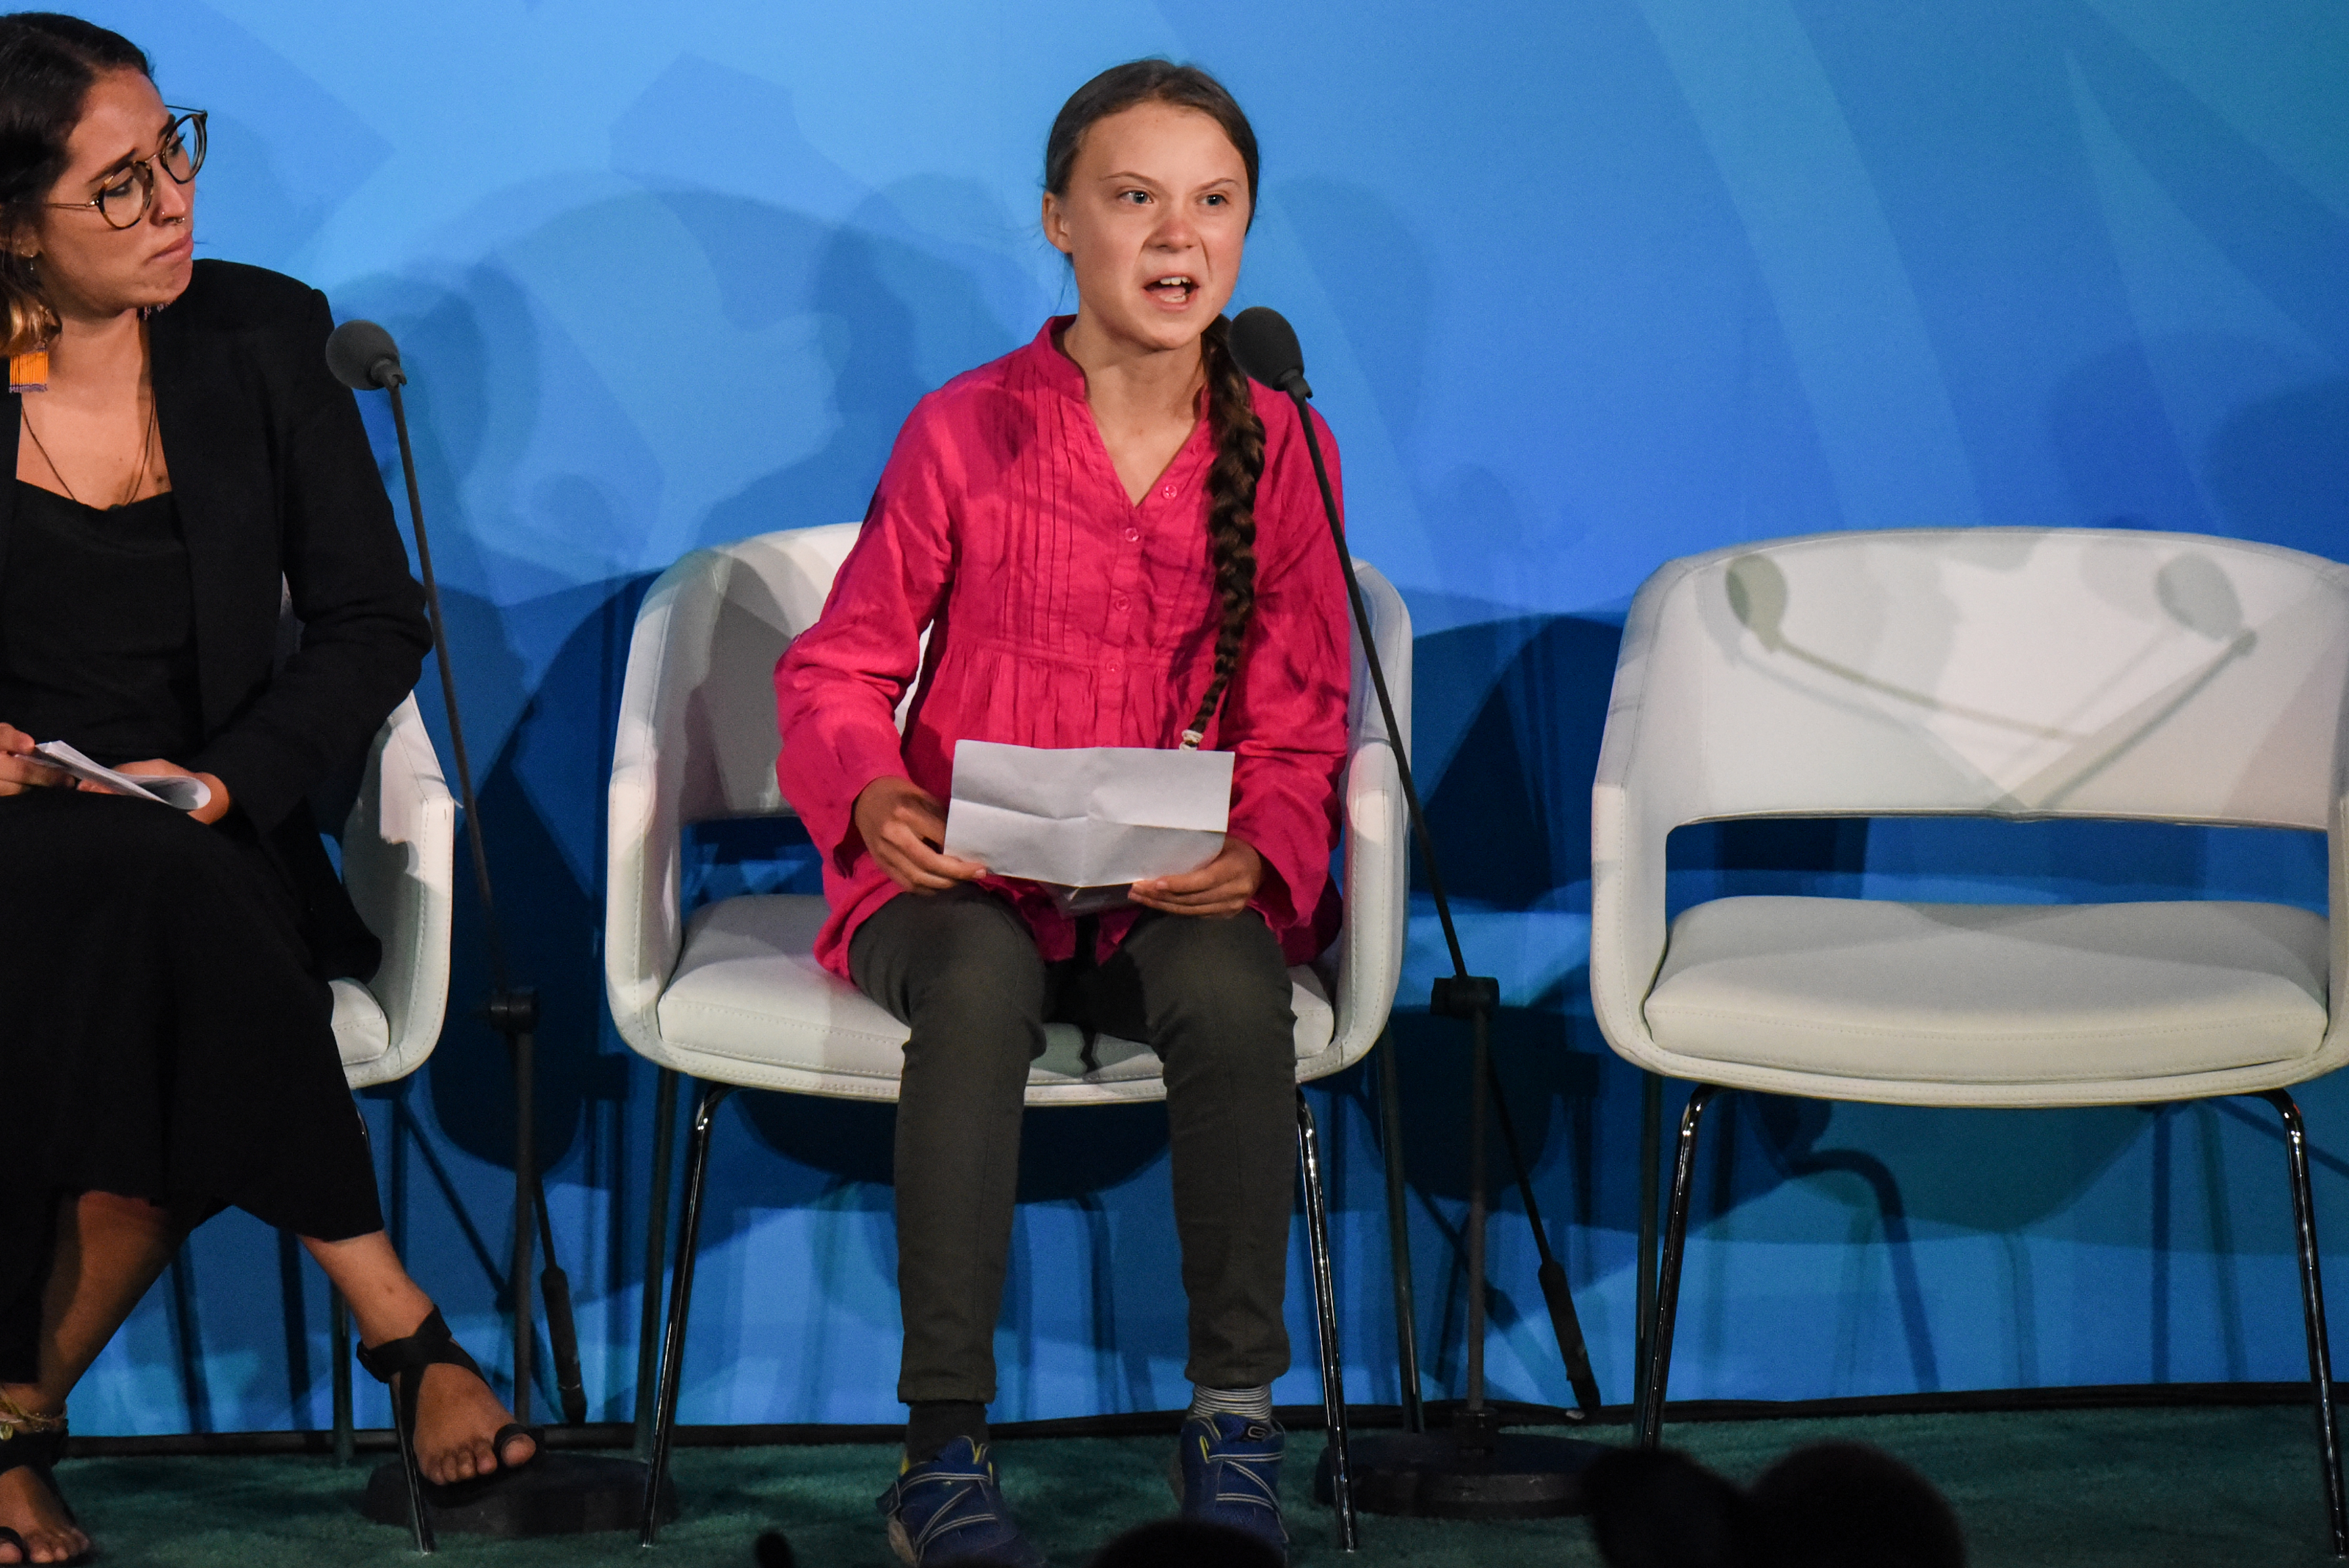 NEW YORK, NY - SEPTEMBER 23: Youth activist Greta Thunberg speaks at the Climate Action Summit at the United Nations on September 23, 2019 in New York City. While the United States will not be participating, China and about 70 other countries are expected to make announcements concerning climate change. The summit at the U.N. comes after a worldwide Youth Climate Strike on Friday, which saw millions of young people around the world demanding action to address the climate crisis. (Photo by Stephanie Keith/Getty Images)